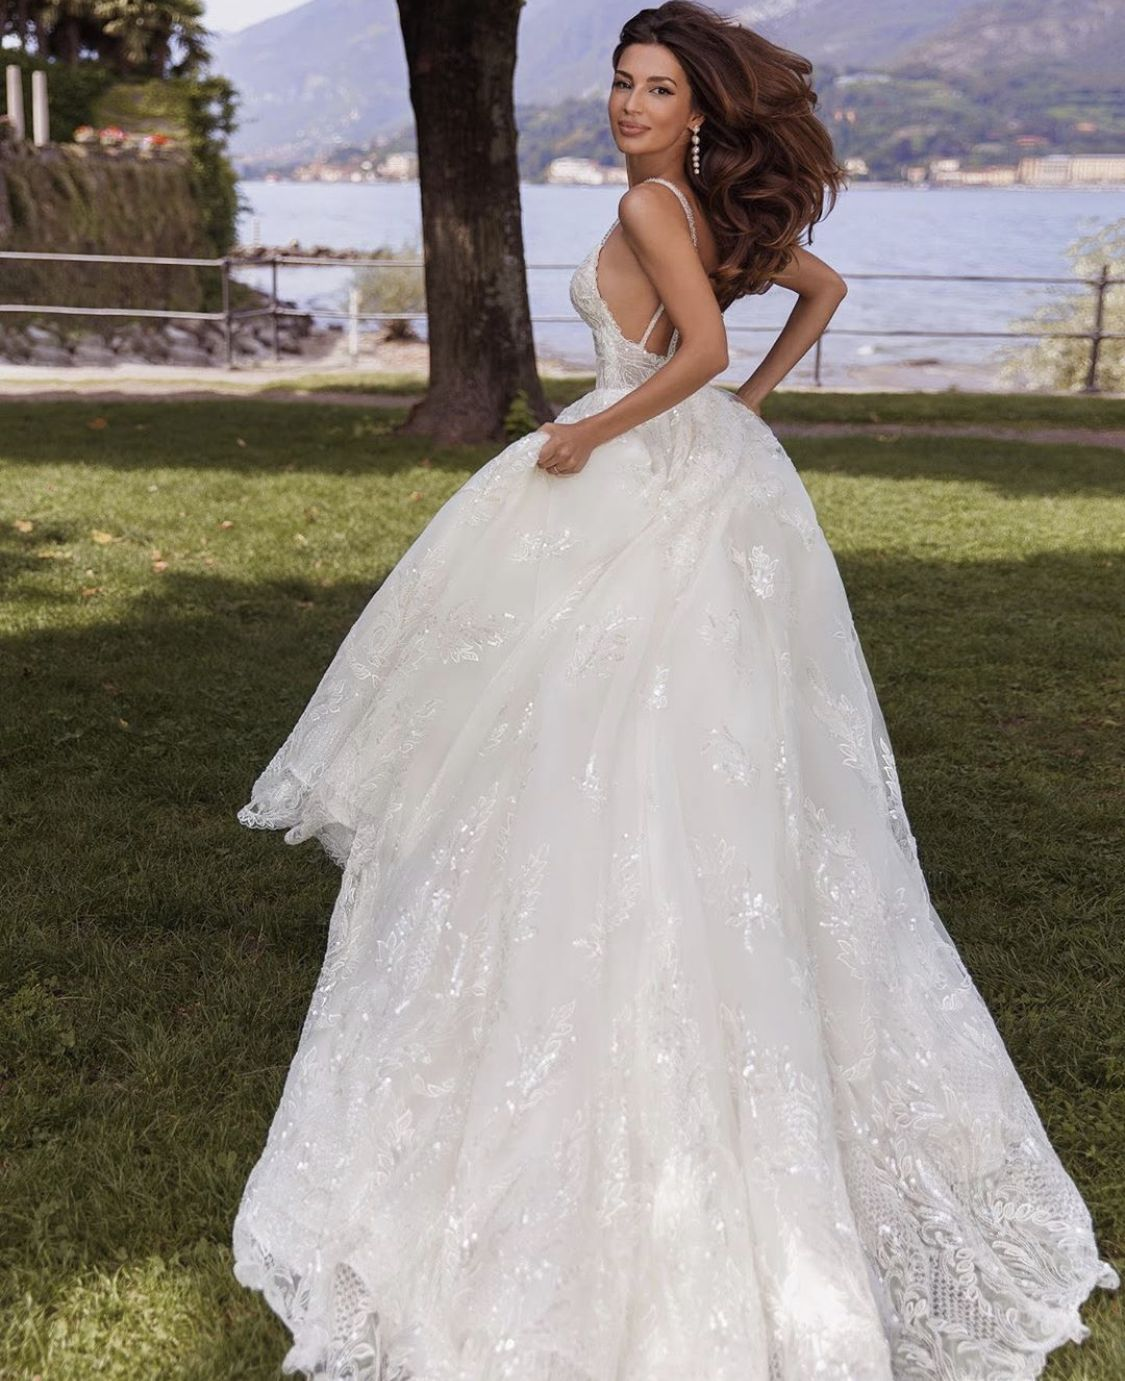 Dreamy Paola Style In 2020 Gorgeous Wedding Dress Wedding Dress Couture Wedding Dresses